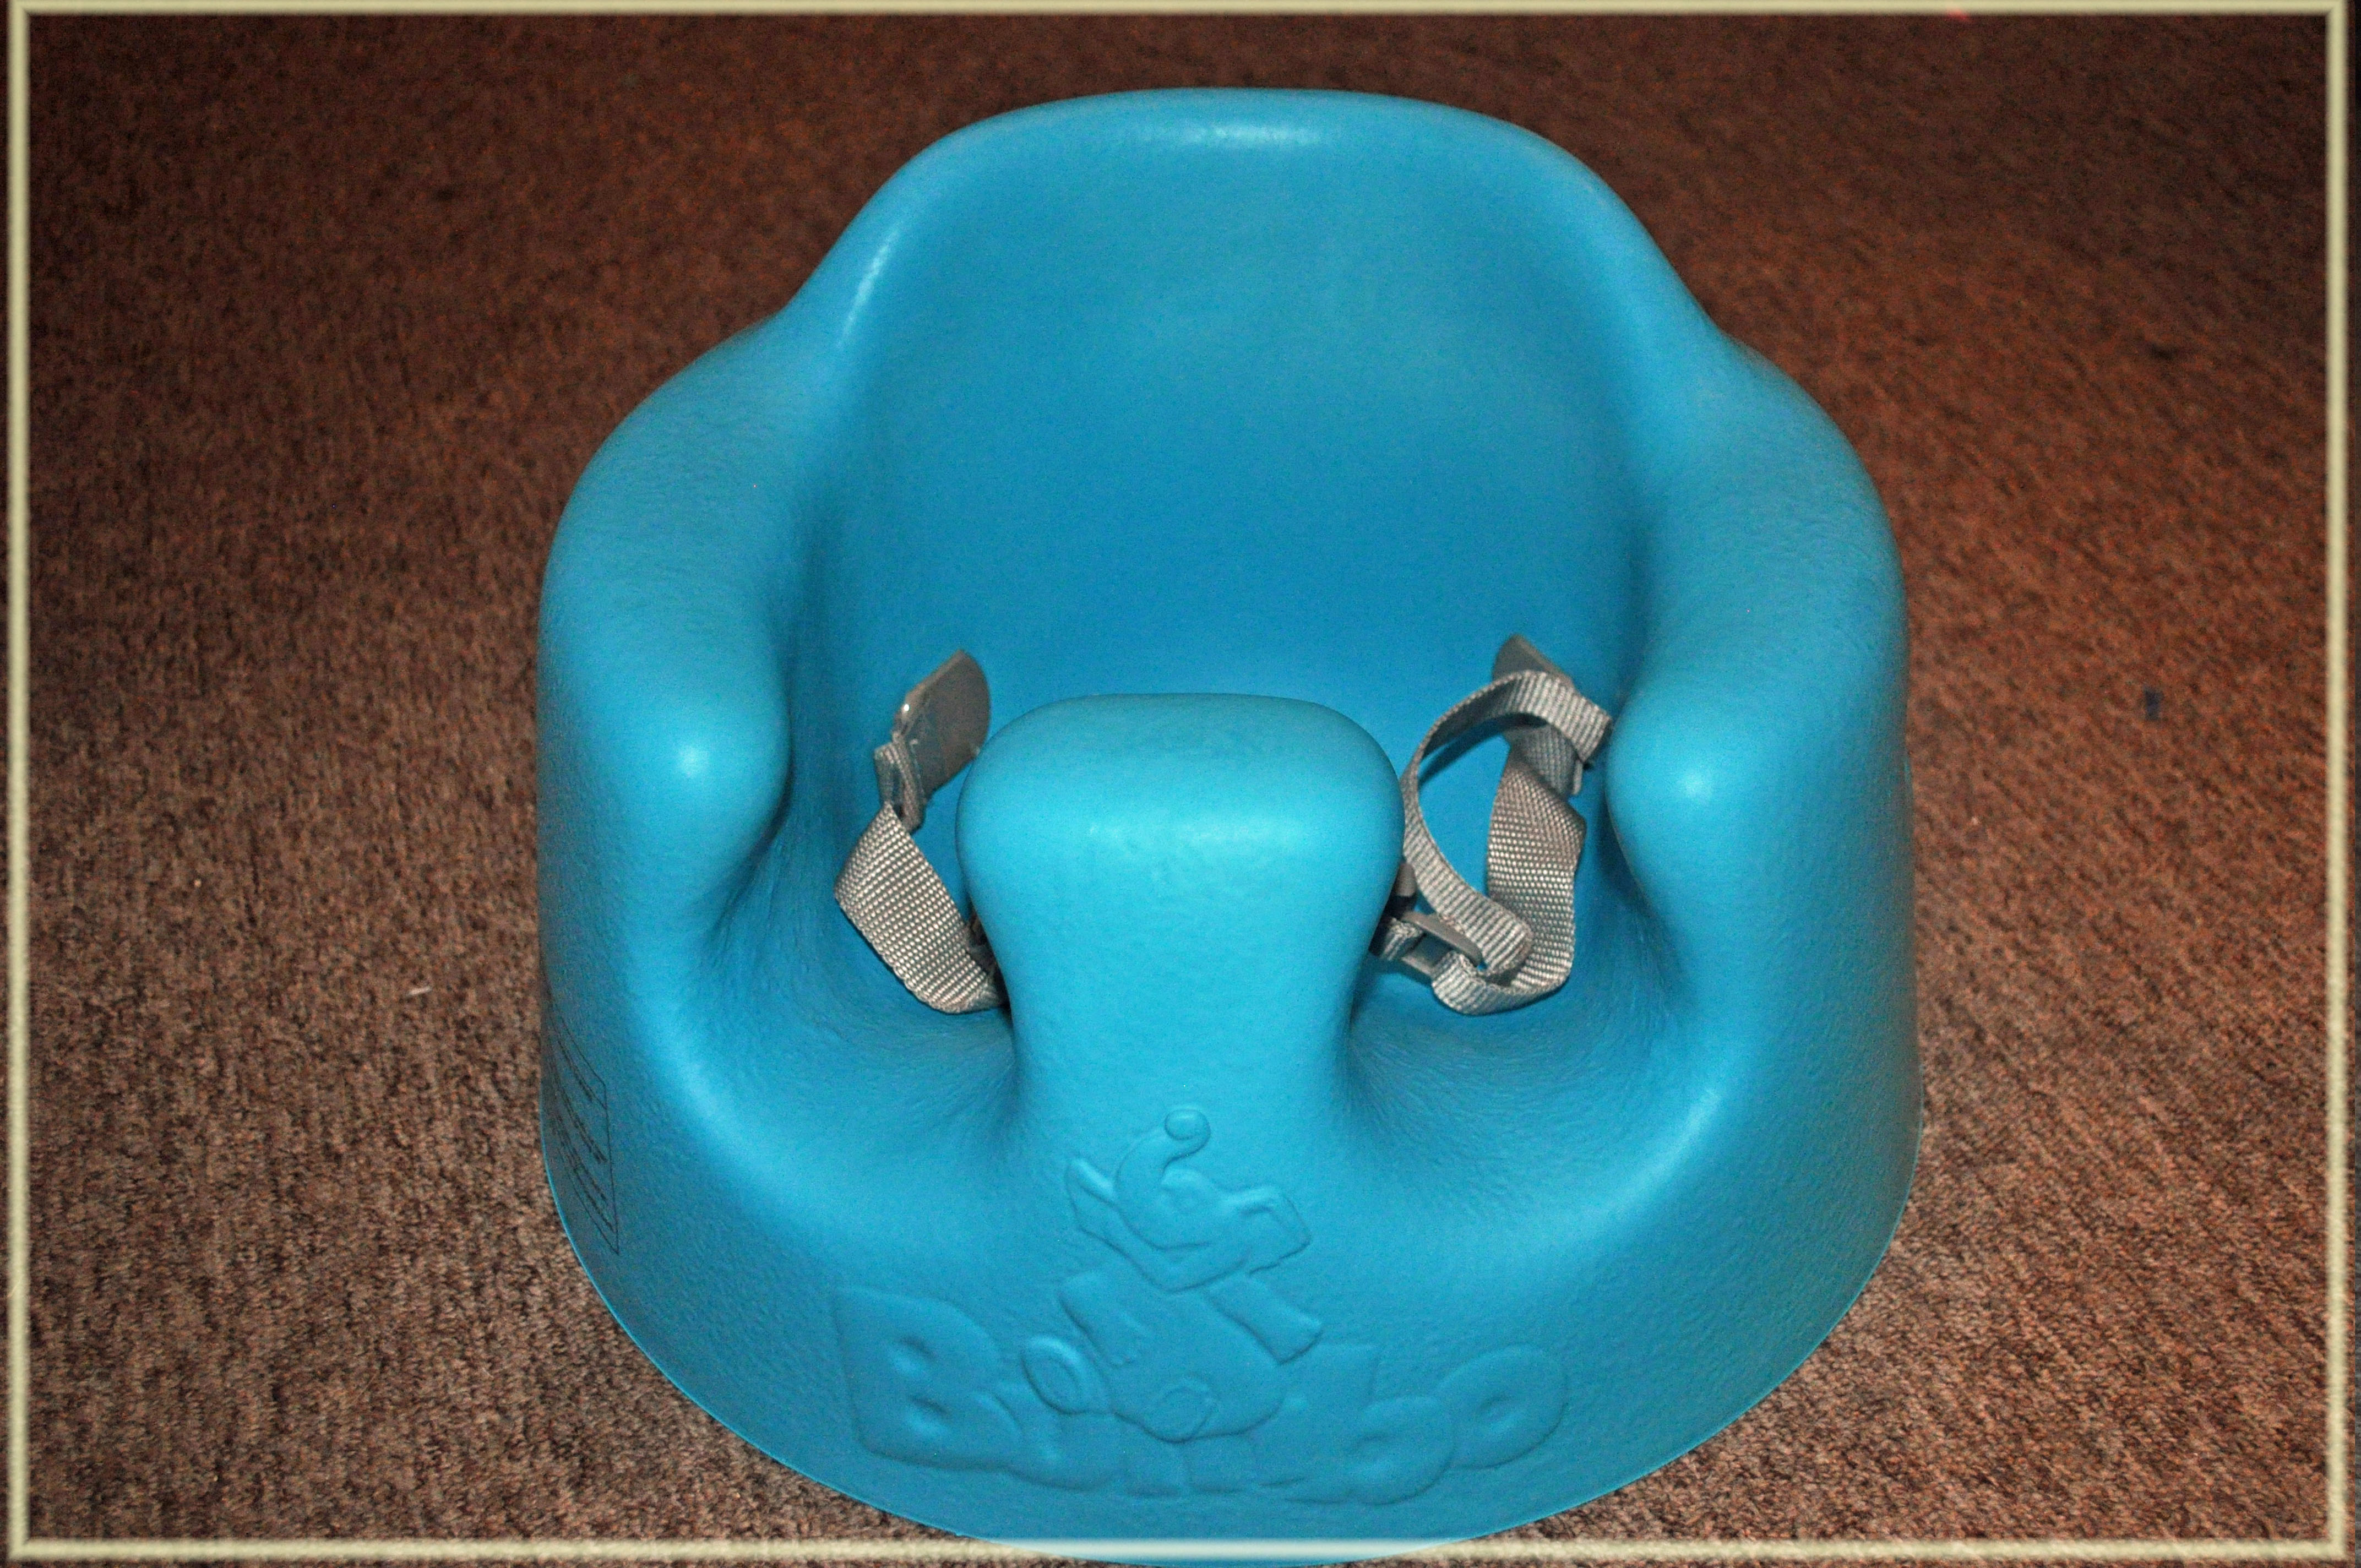 chair to help baby sit up black resin patio chairs must haves bumbo floor seat with play tray mommy